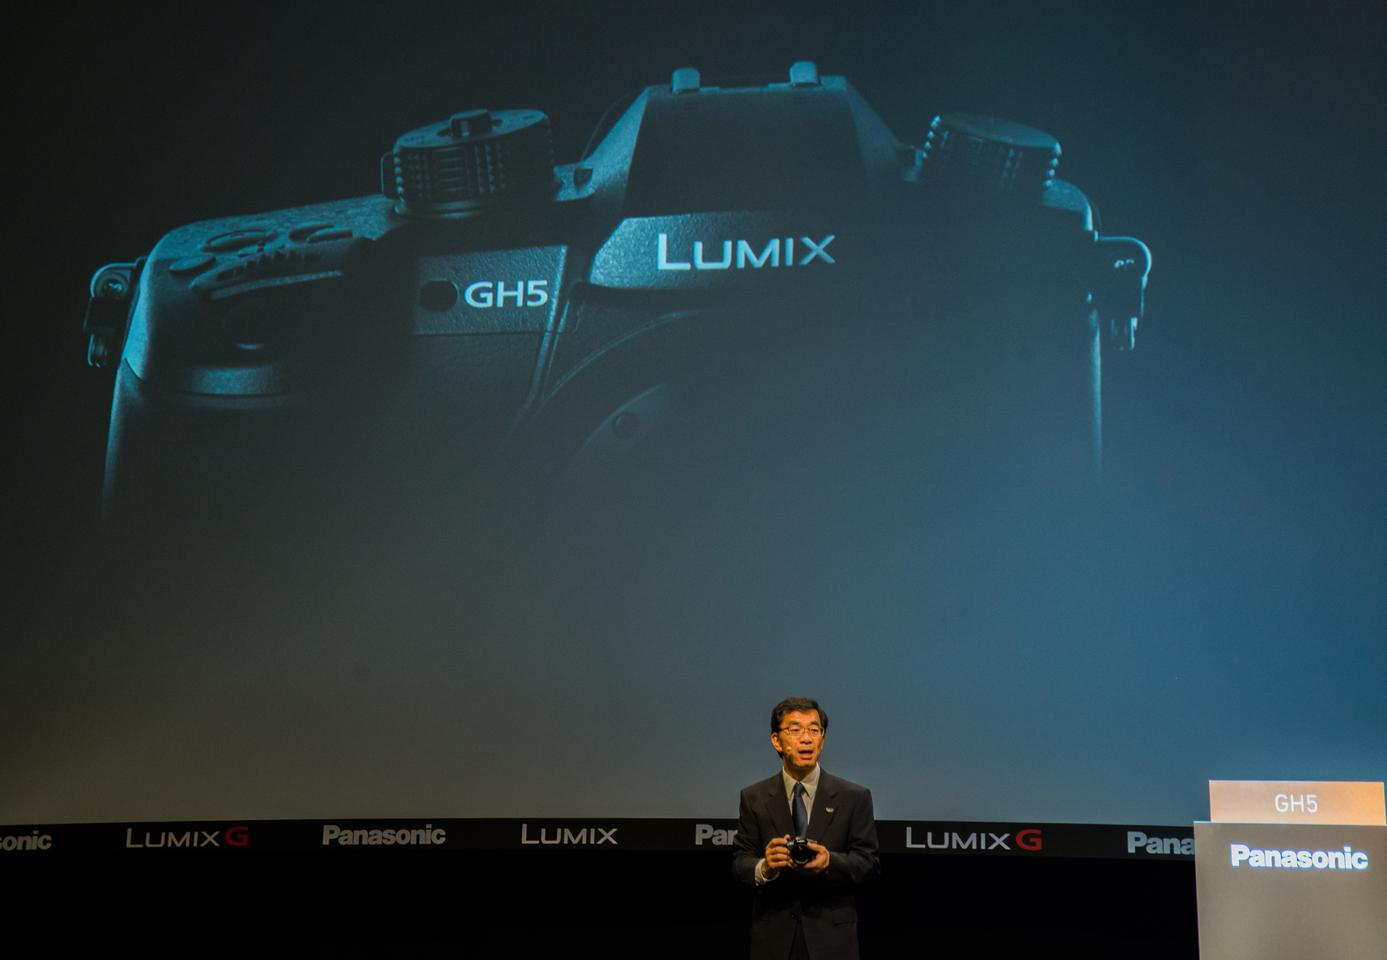 The eve of Photokina kicked off with Panasonic announcing that the GH5 is in development, and due to launch in 2017